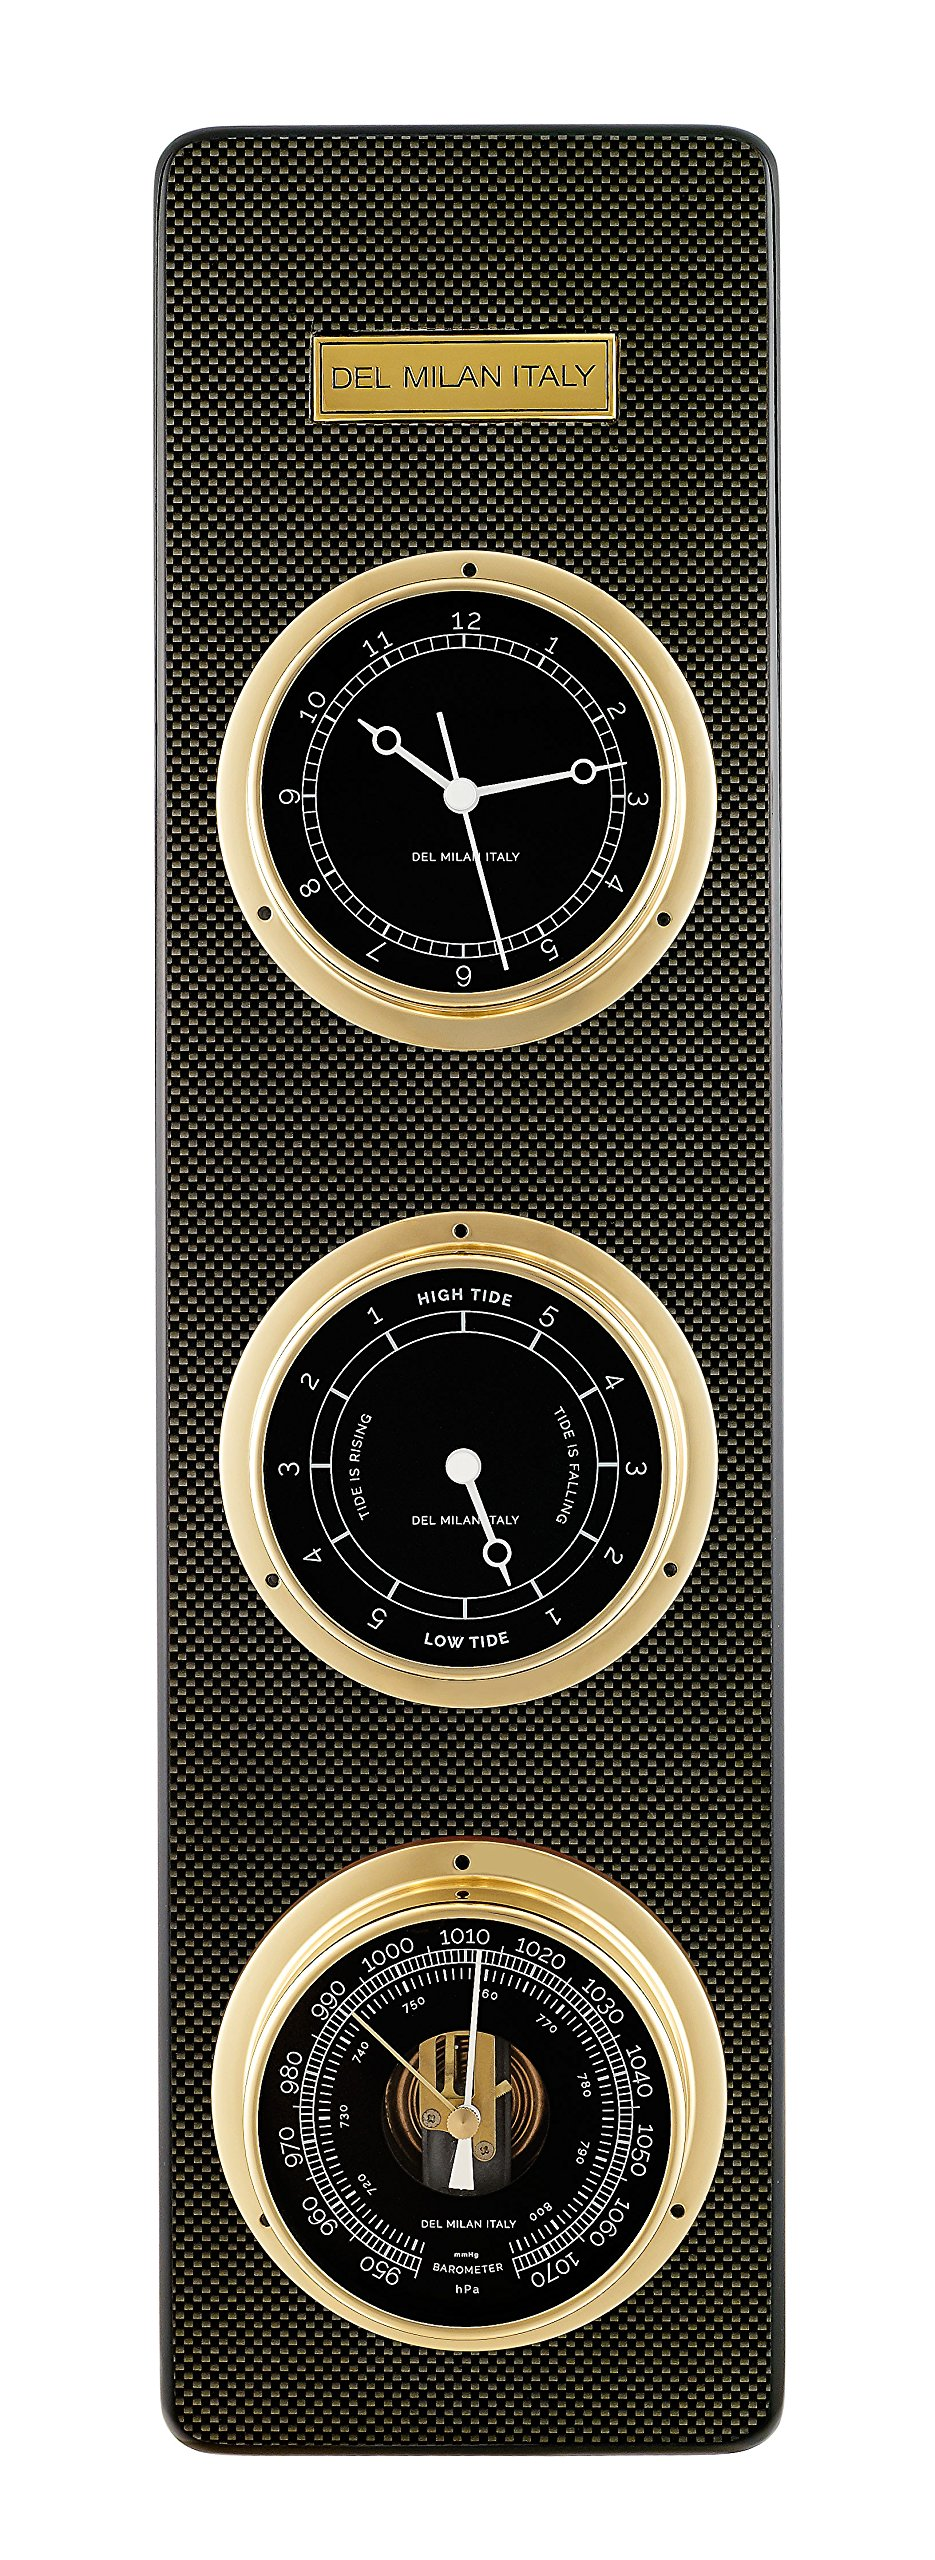 Del Milan 3 in 1 Fishermans Station, Clock, Tide Clock, Barometer, Carbon Fibre Finish